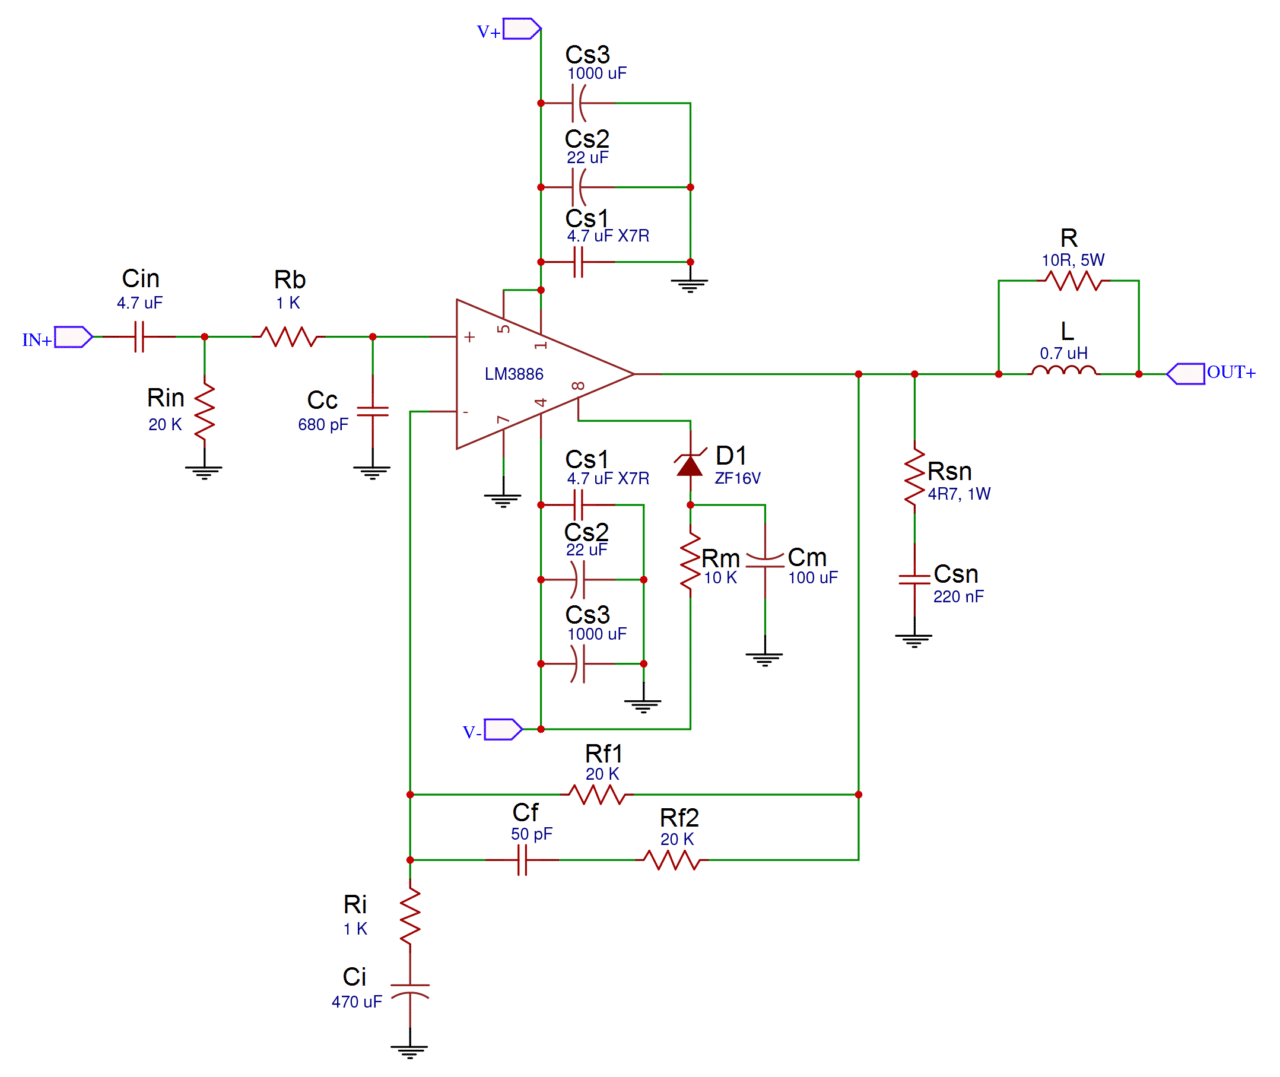 A Complete Guide To Design And Build Hi Fi Lm3886 Amplifier Wiring Diagrams As Well Diagram Of Typical House Circuit Ill Be Using The Schematic Below Its Basically Same One In Datasheet But With Optional Stability Components Included